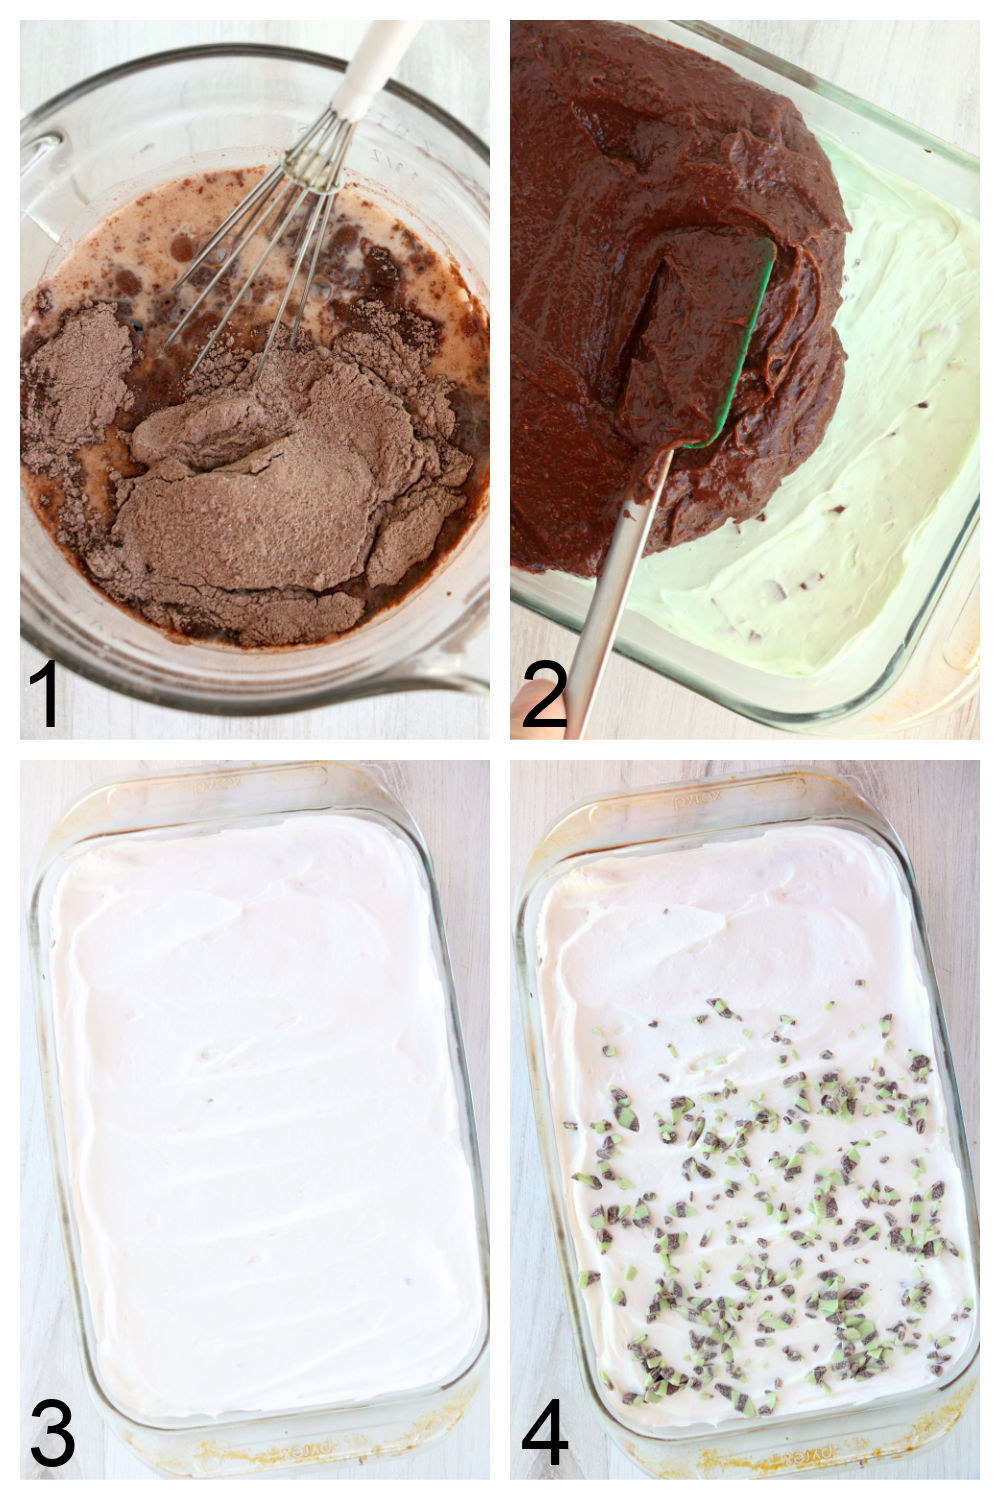 Steps to making mint chocolate lush dessert